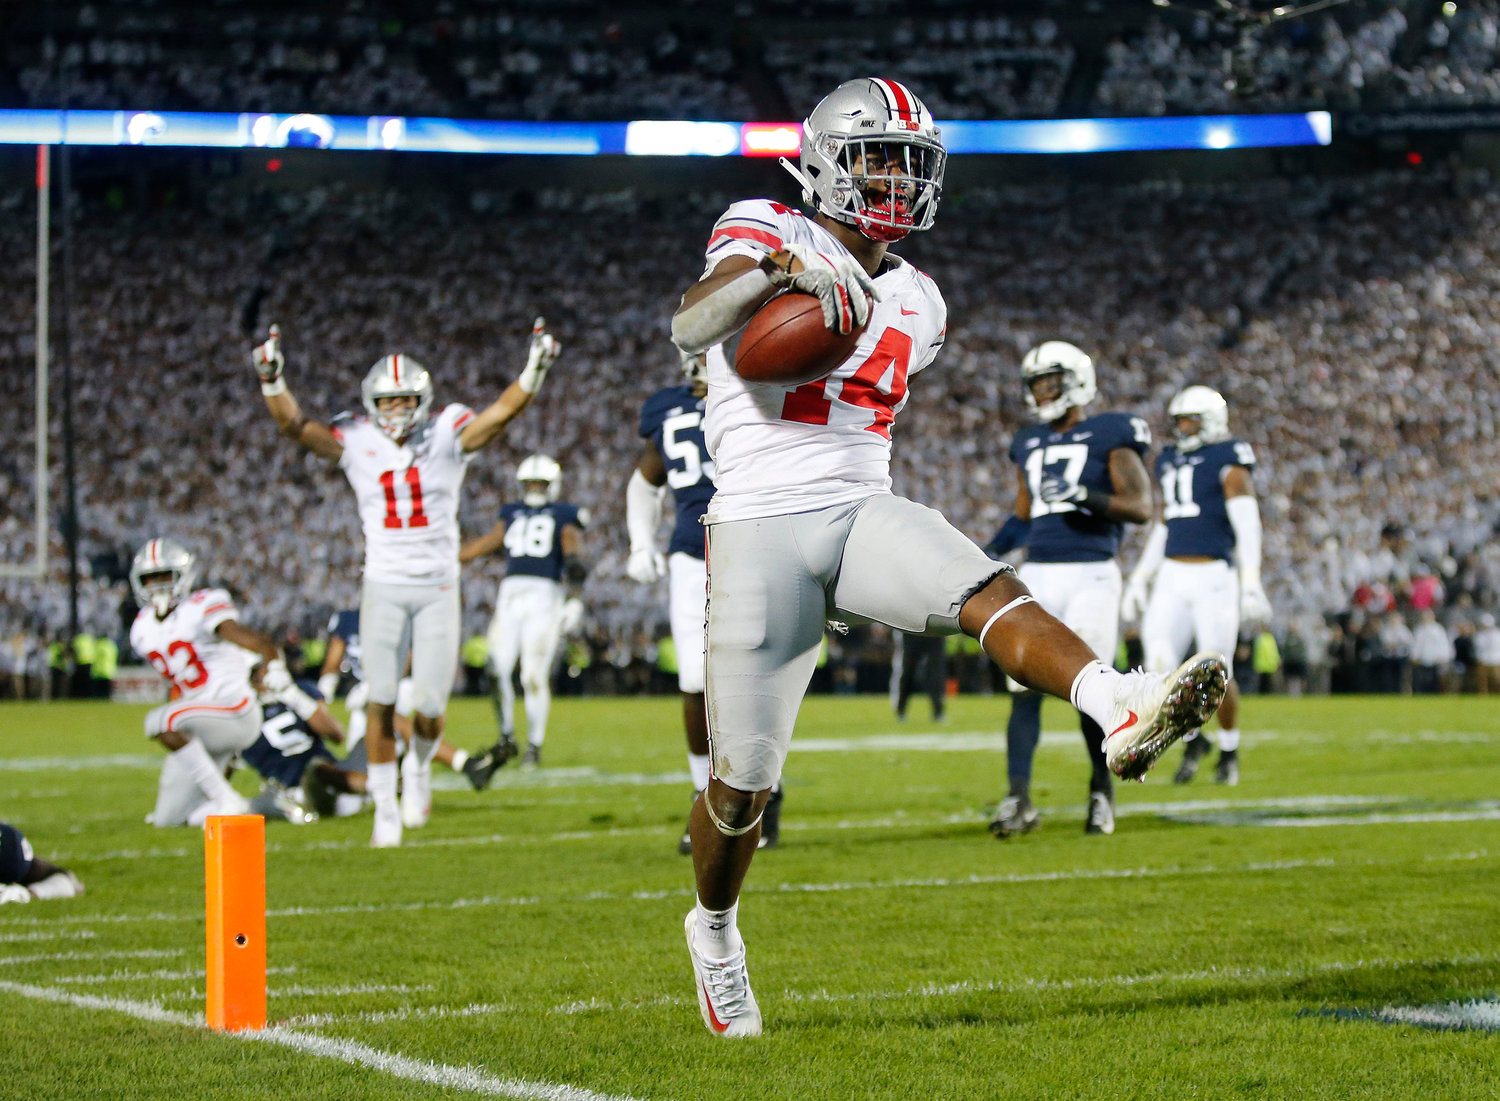 Ohio State wide receiver K.J. Hill Jr. (14) high-steps into the end zone for a 24-yard touchdown during the fourth quarter against Penn State at Beaver Stadium in University Park, Pa., on Saturday, Sept. 29, 2018. The visiting Buckeyes won, 27-26.